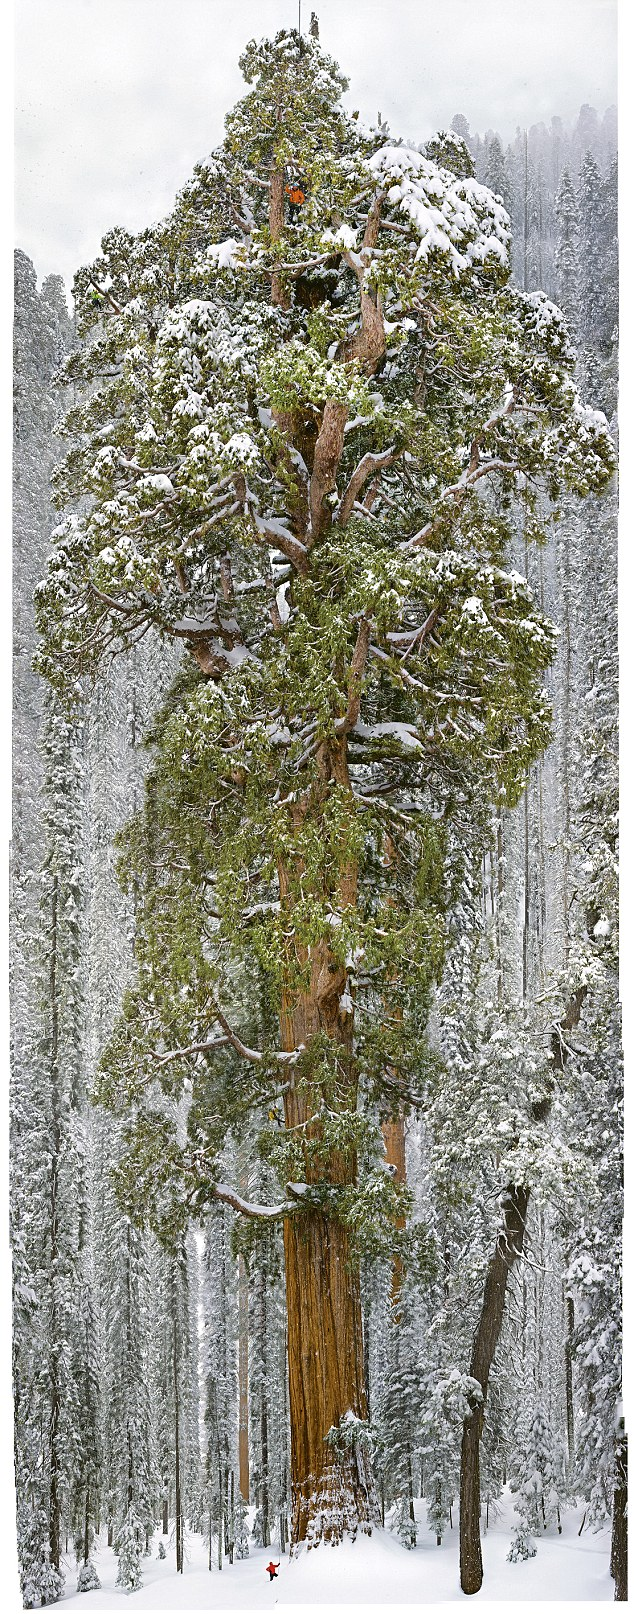 The President Tree, Sequoia National Park, California